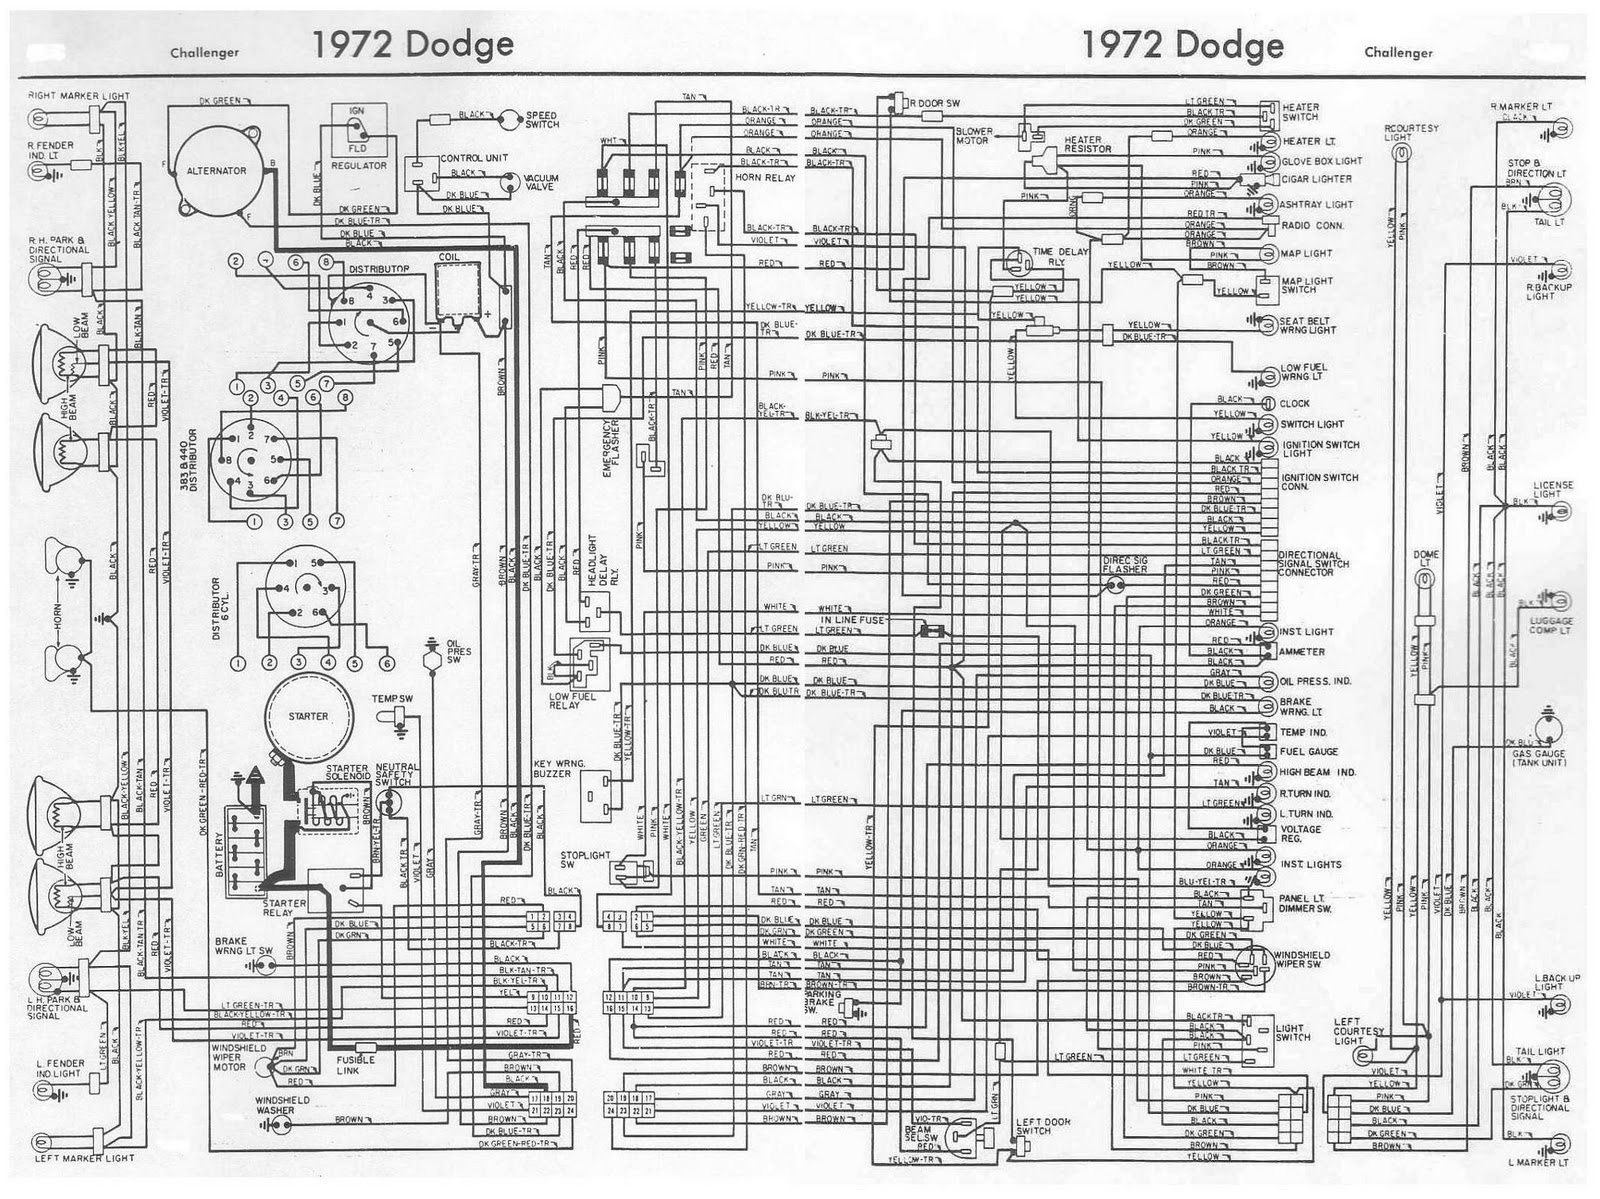 Comfortable 1970 Dodge Charger Wiring Diagram Contemporary - Wiring Diagram